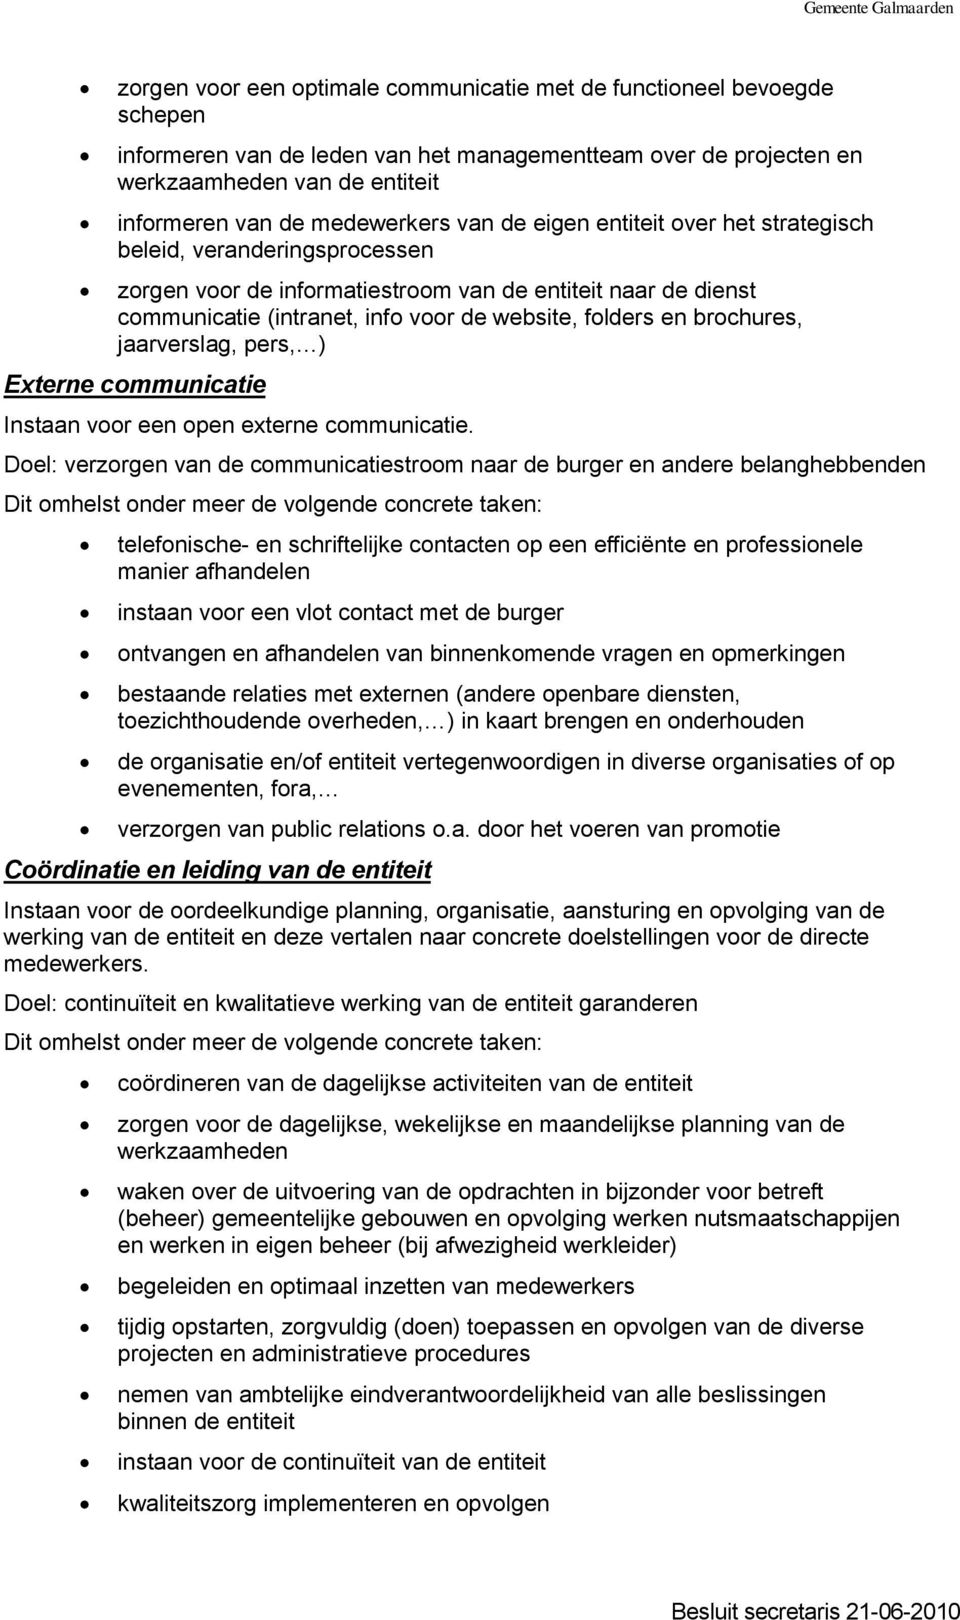 folders en brochures, jaarverslag, pers, ) Externe communicatie Instaan voor een open externe communicatie.